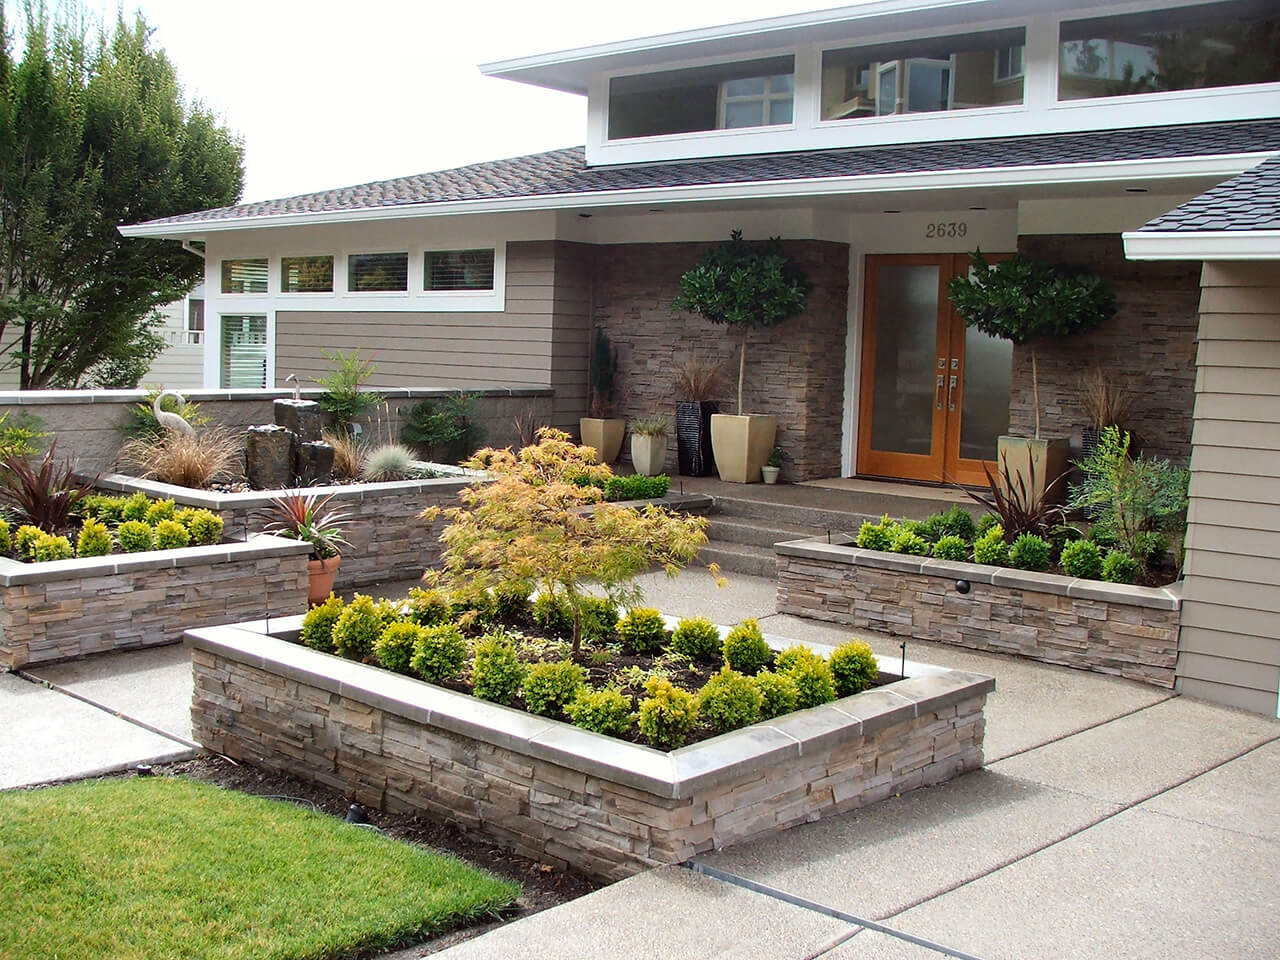 20 brilliant front garden landscaping ideas style motivation for Front yard landscaping